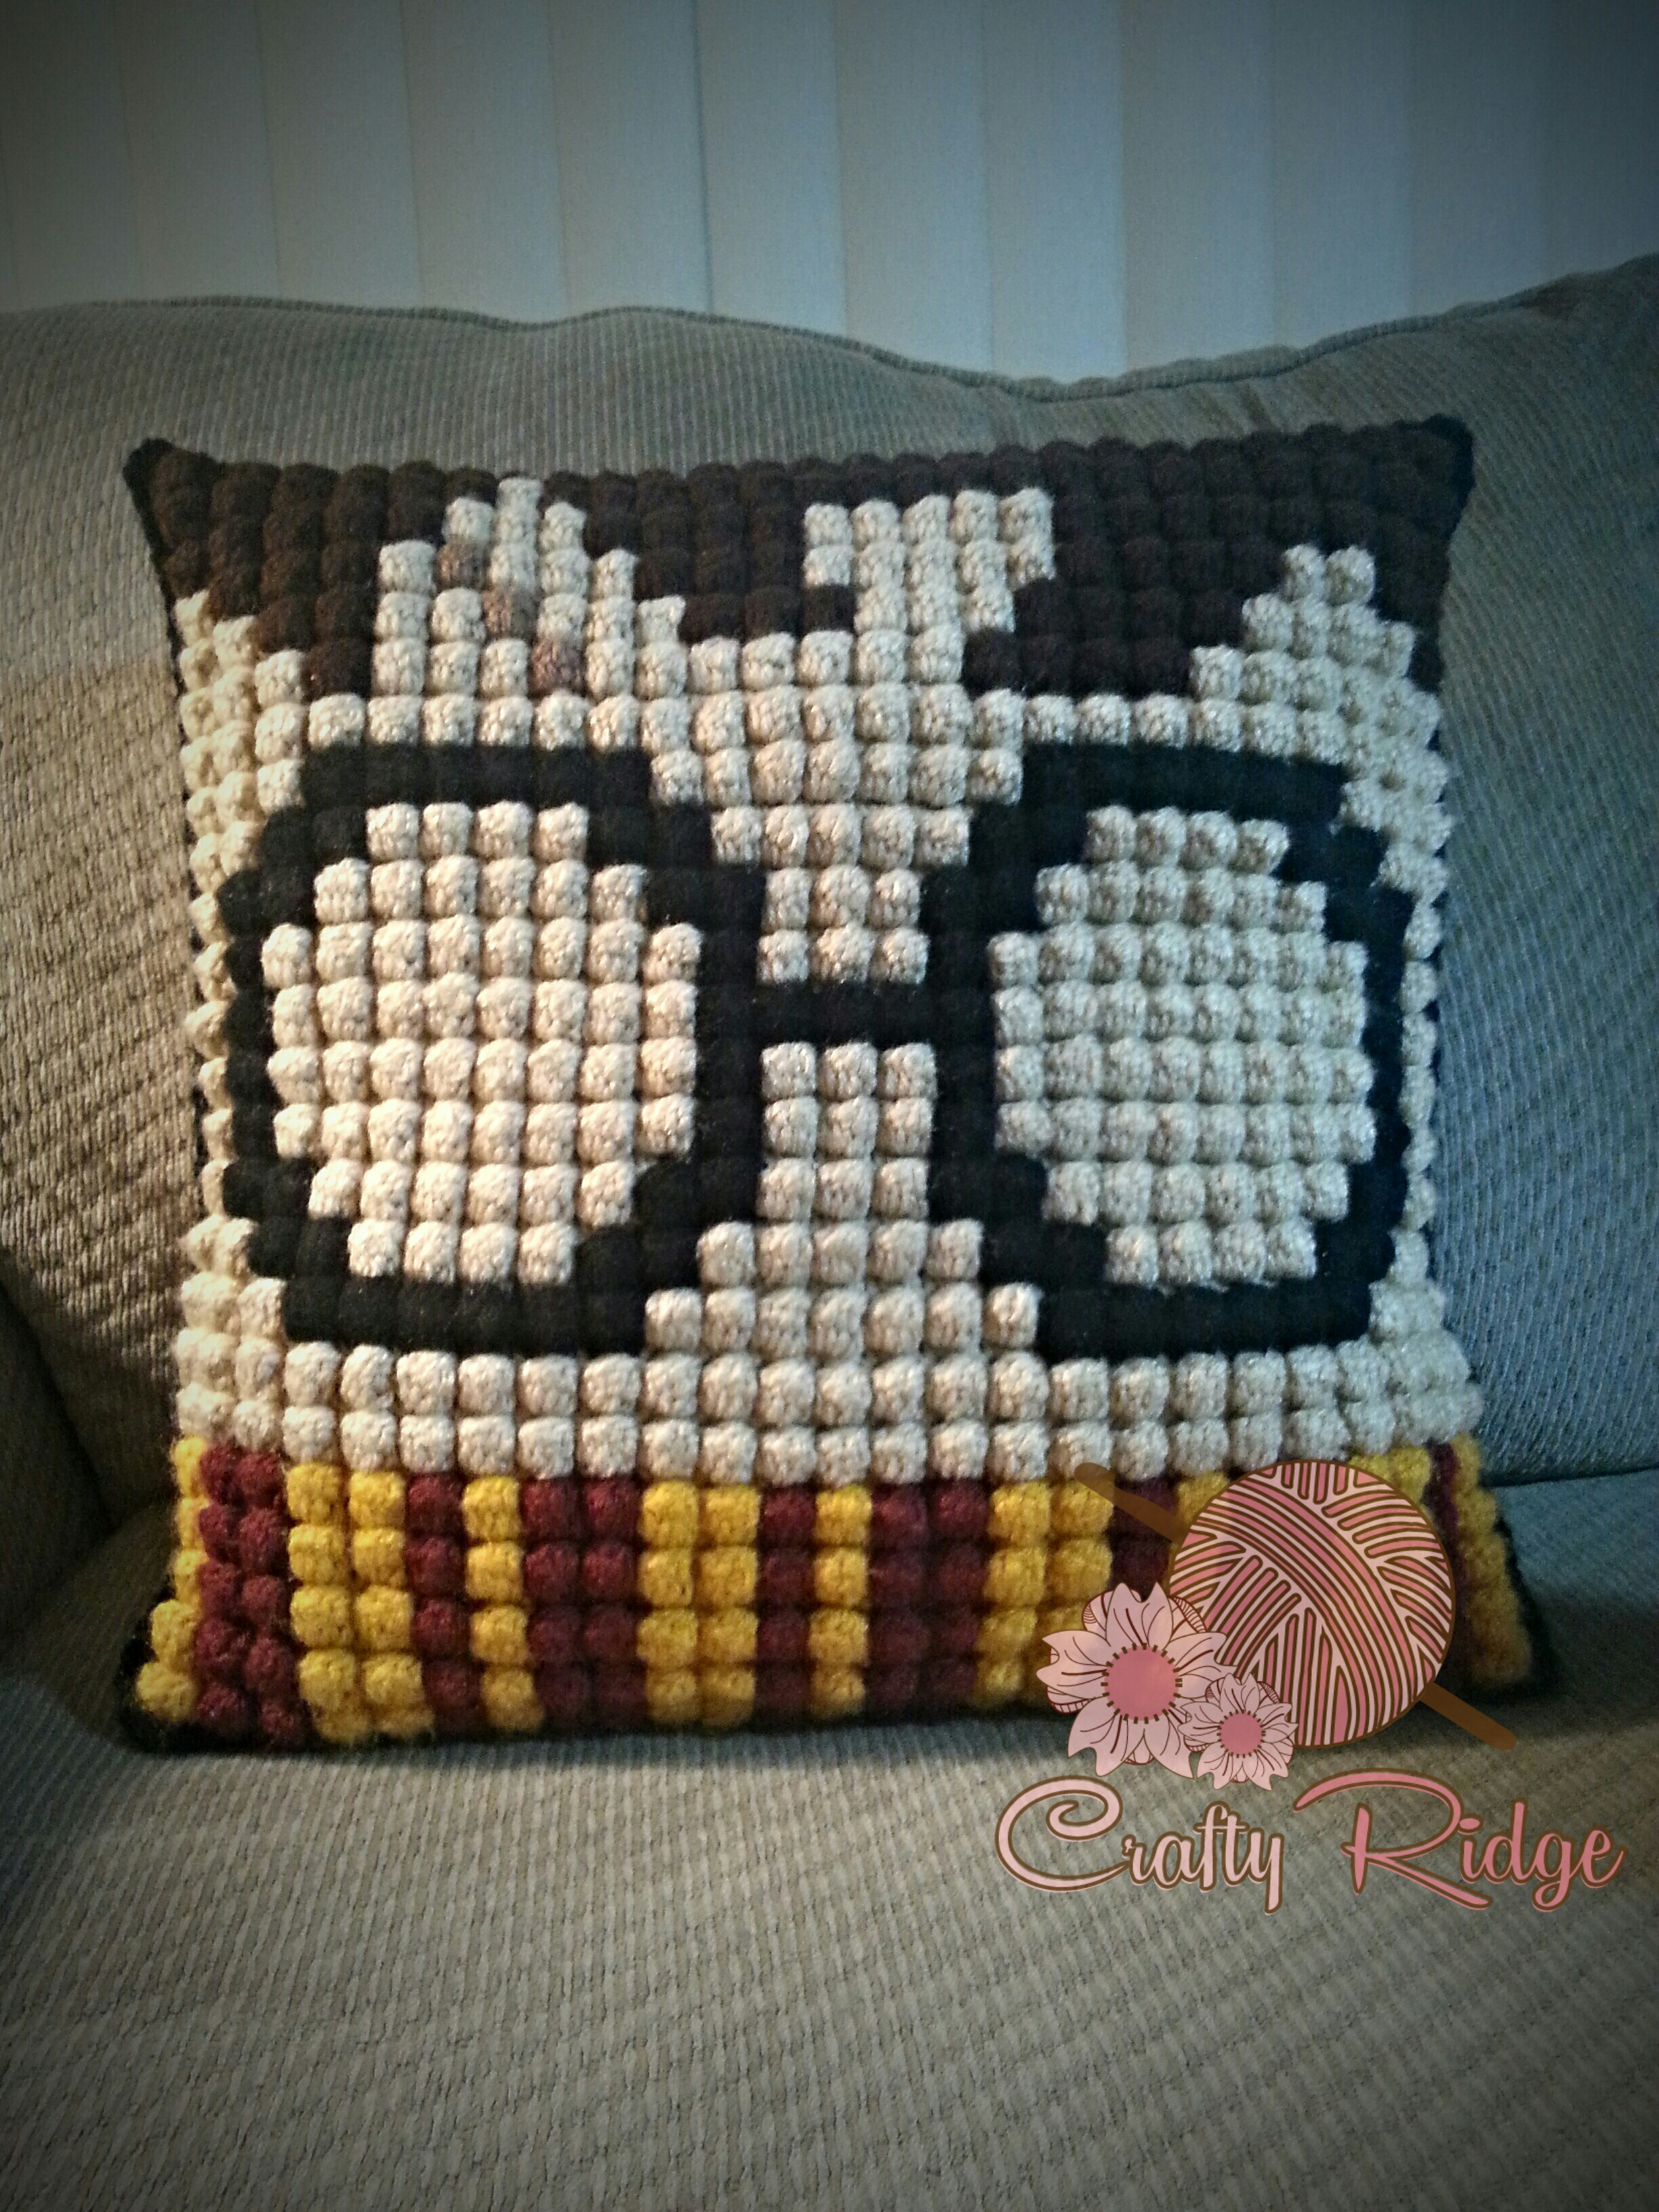 My Very Own Potter Pillow! | Crafty Ridge Designs